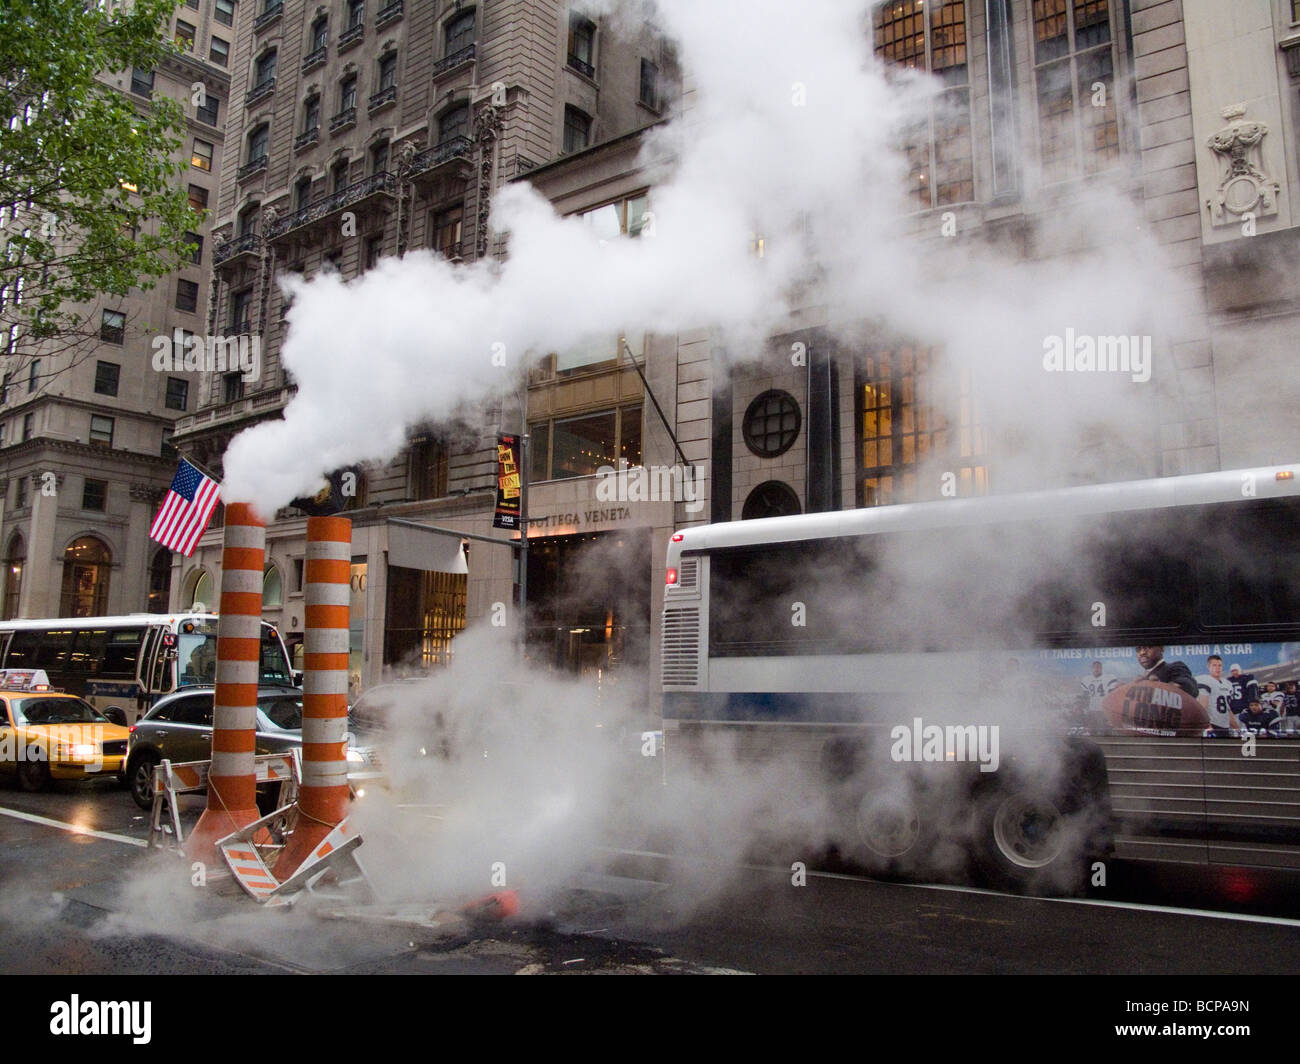 Congestion steam and weather are all part of the mix on 5th Avenue in midtown Manhattan - Stock Image